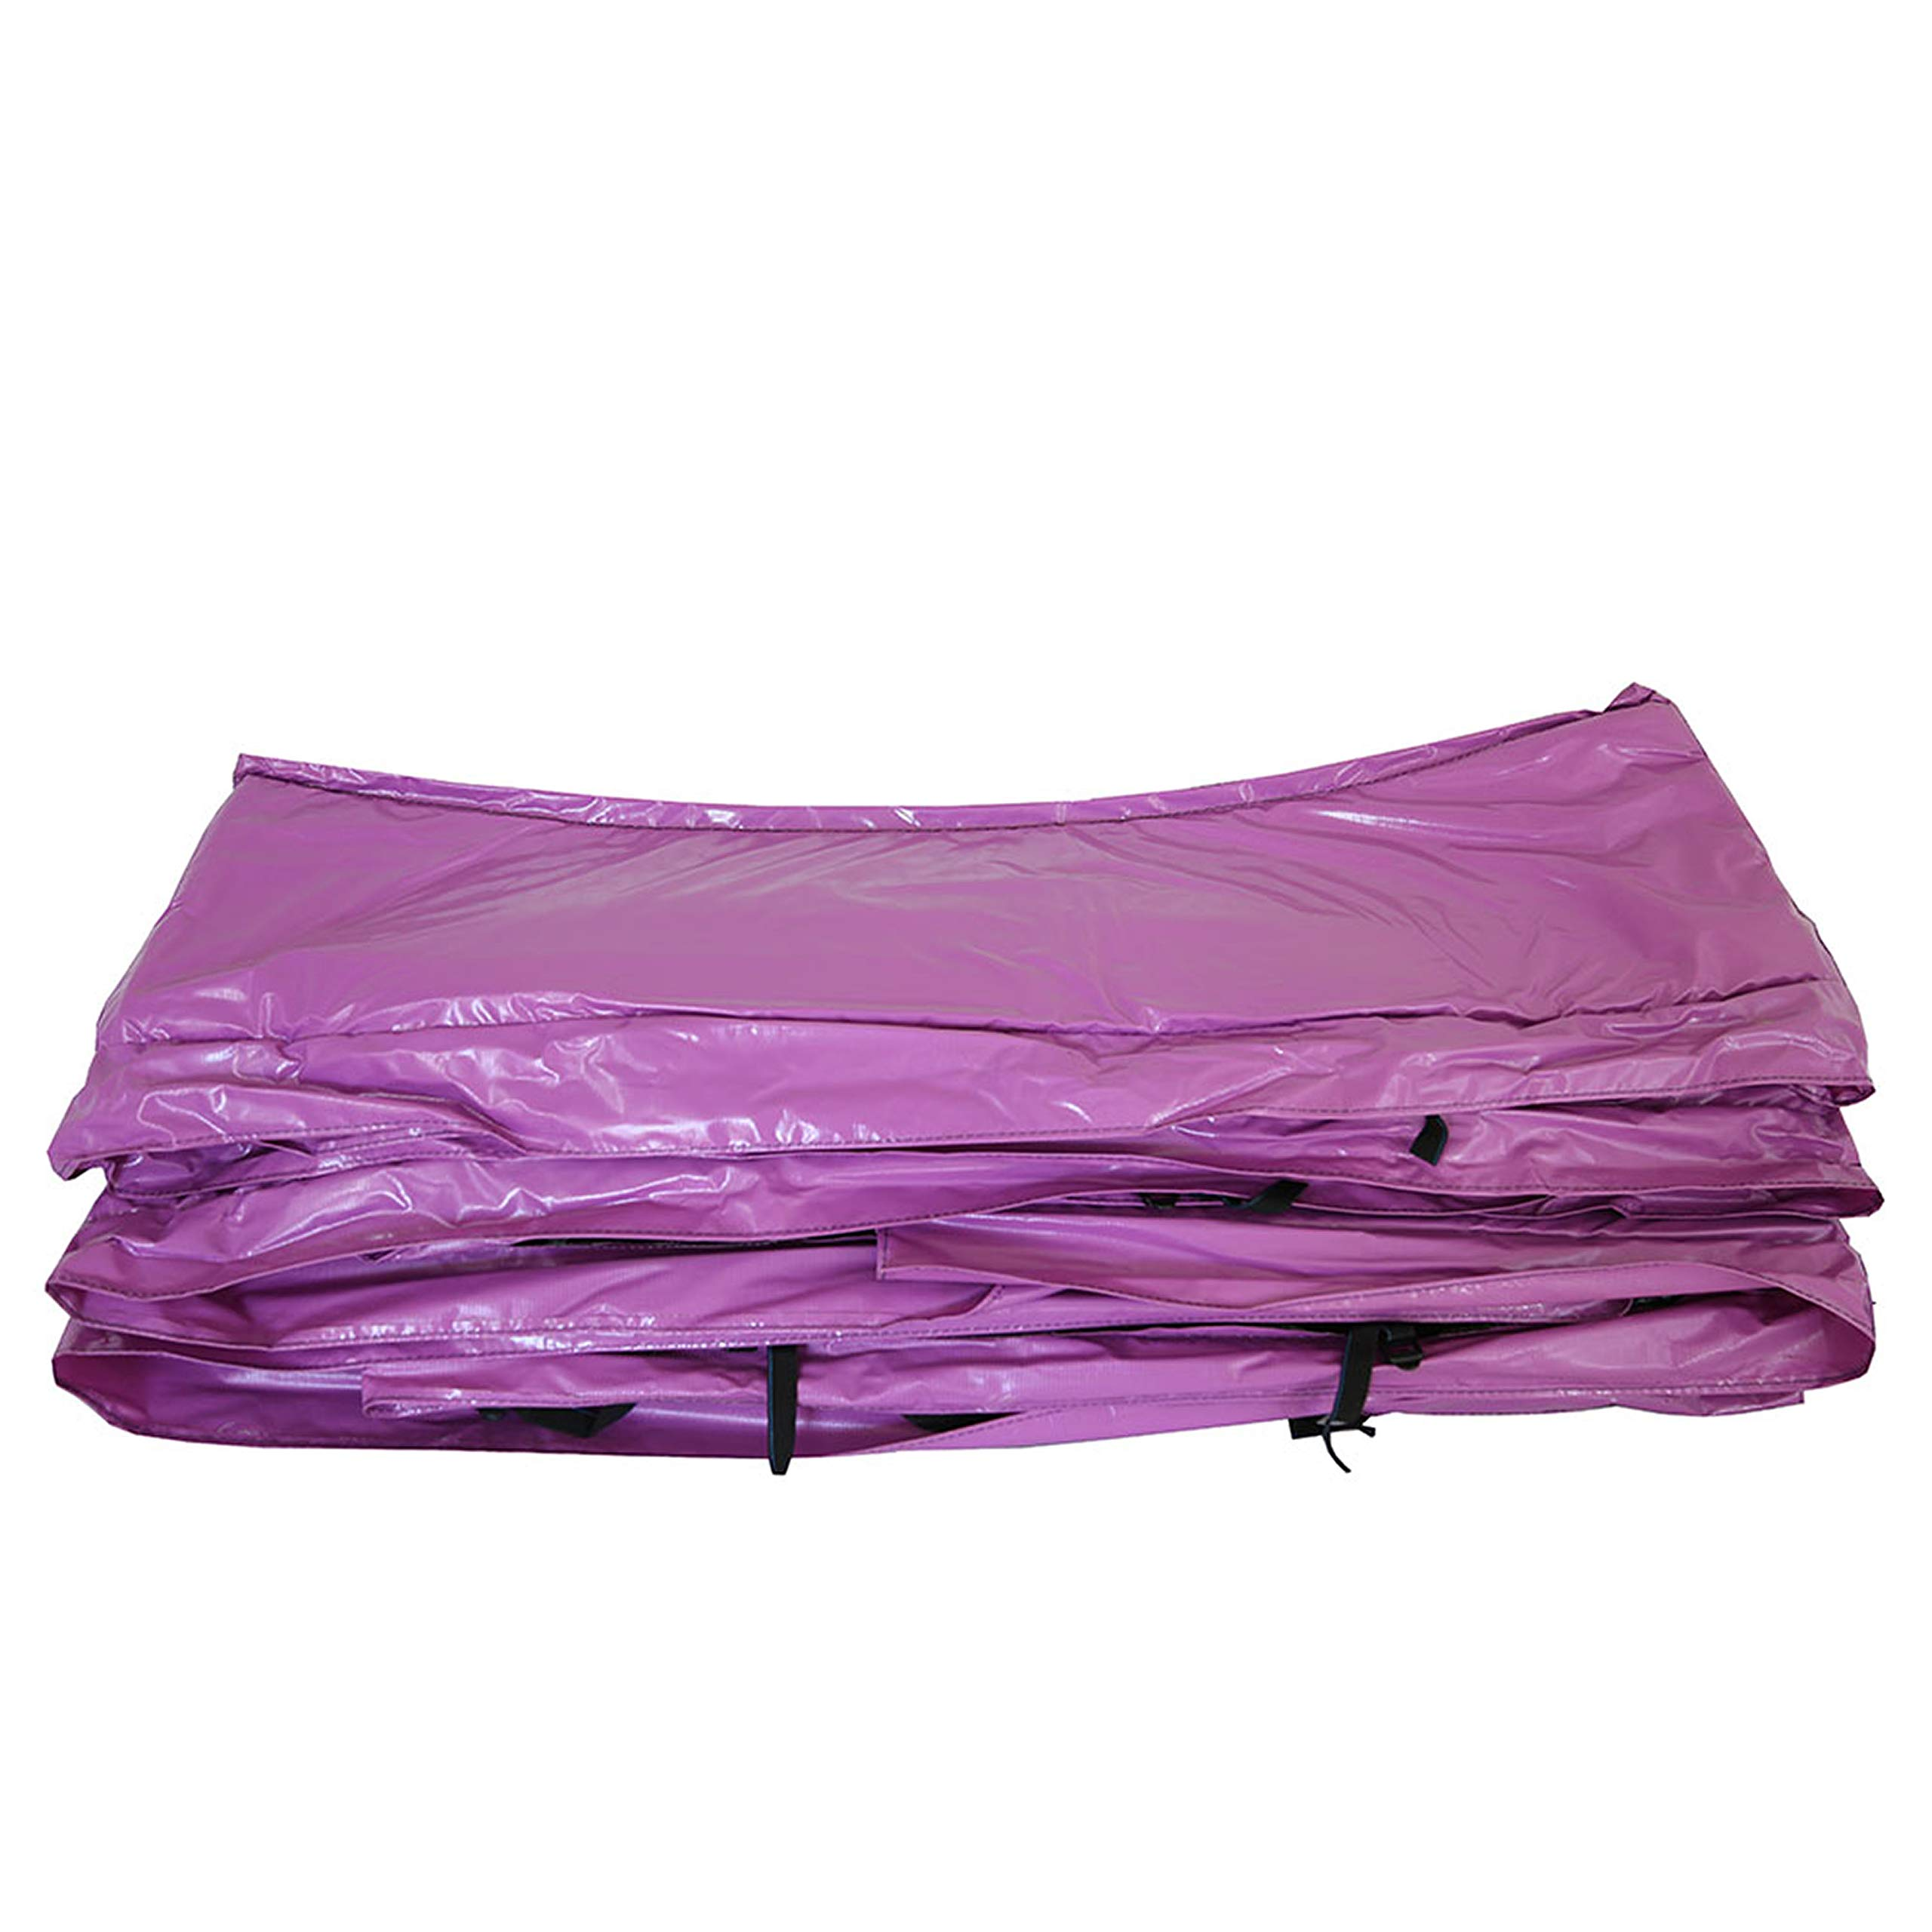 Skywalker Trampolines Purple 12' Round Spring Pad by Skywalker Trampolines (Image #1)